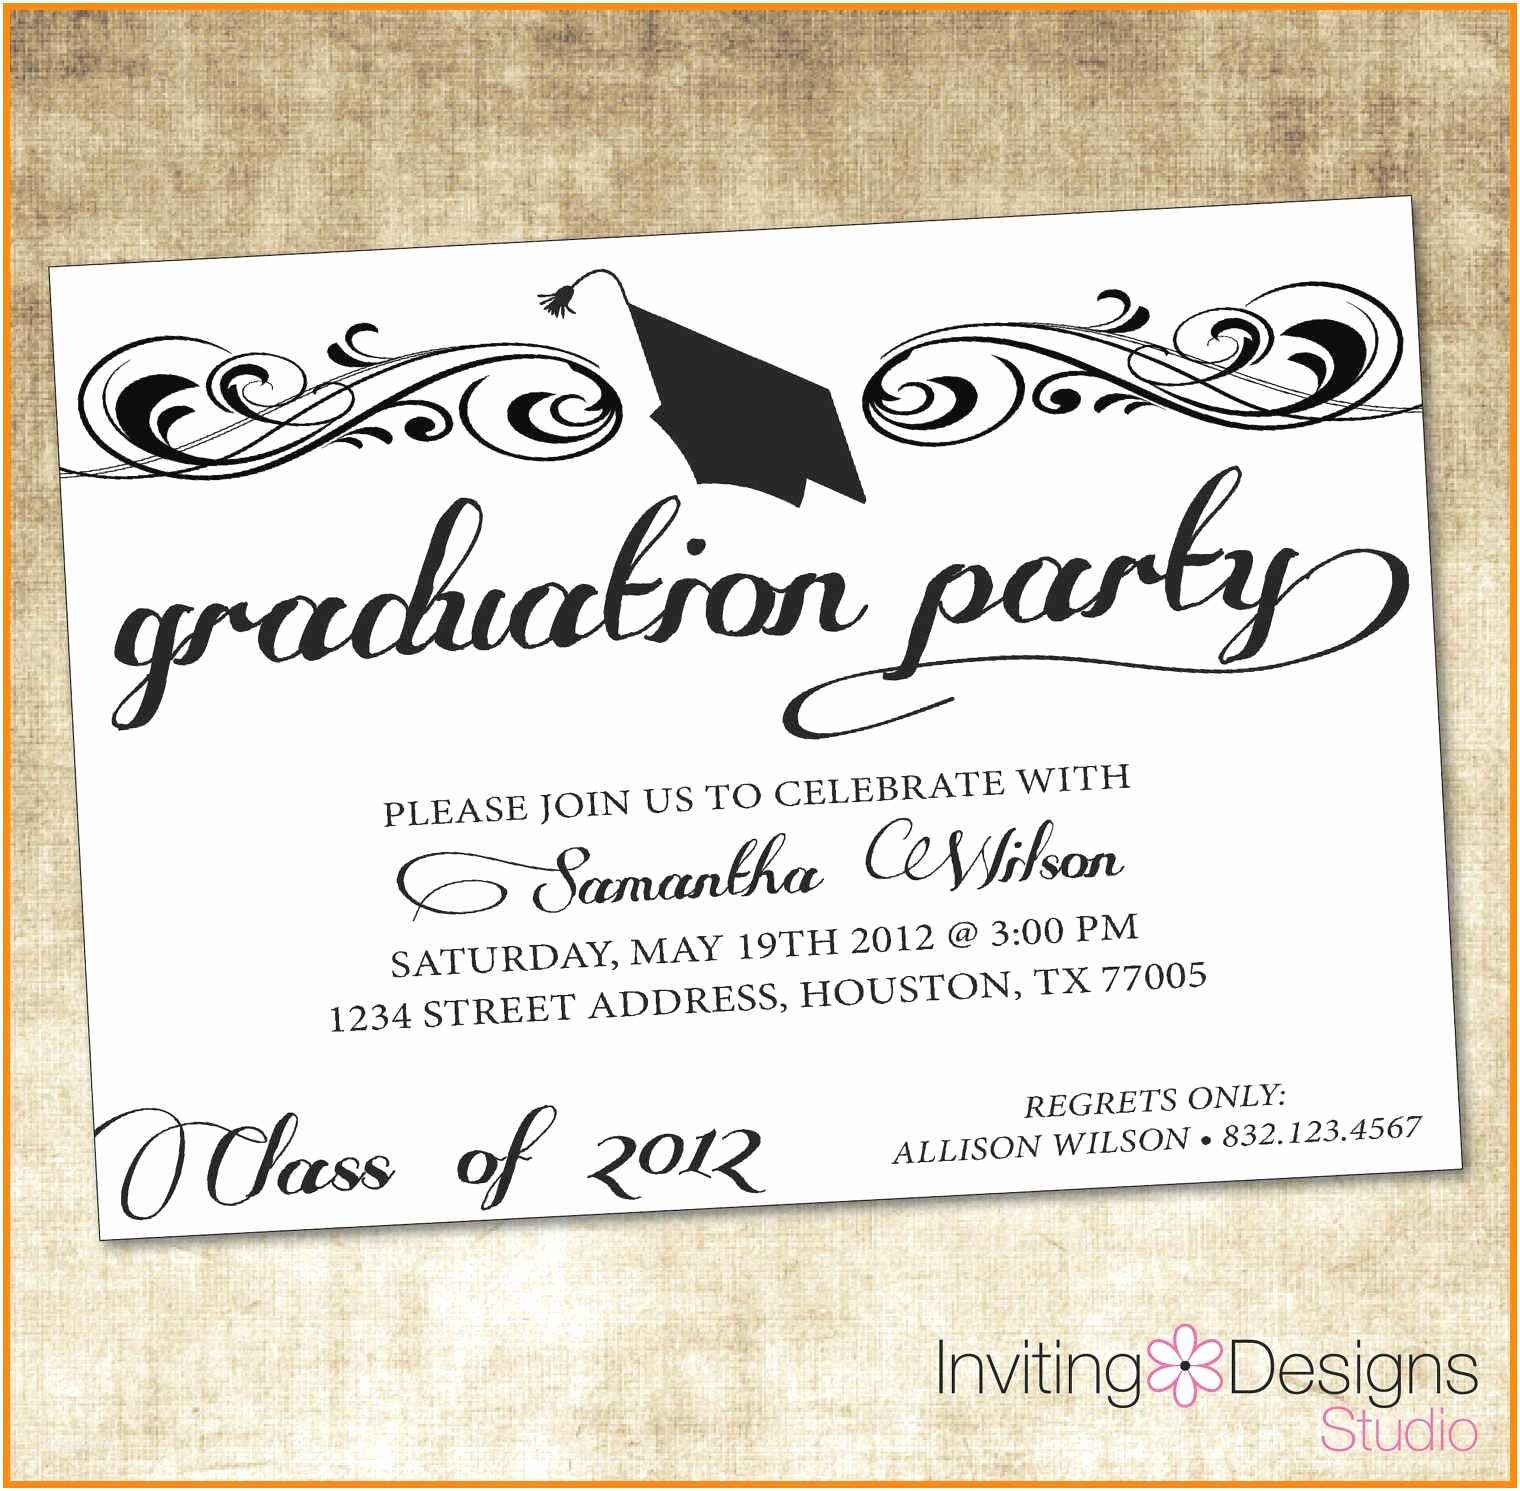 Graduation Party Invitation Templates Free Graduation Party Invitation Templates for Word